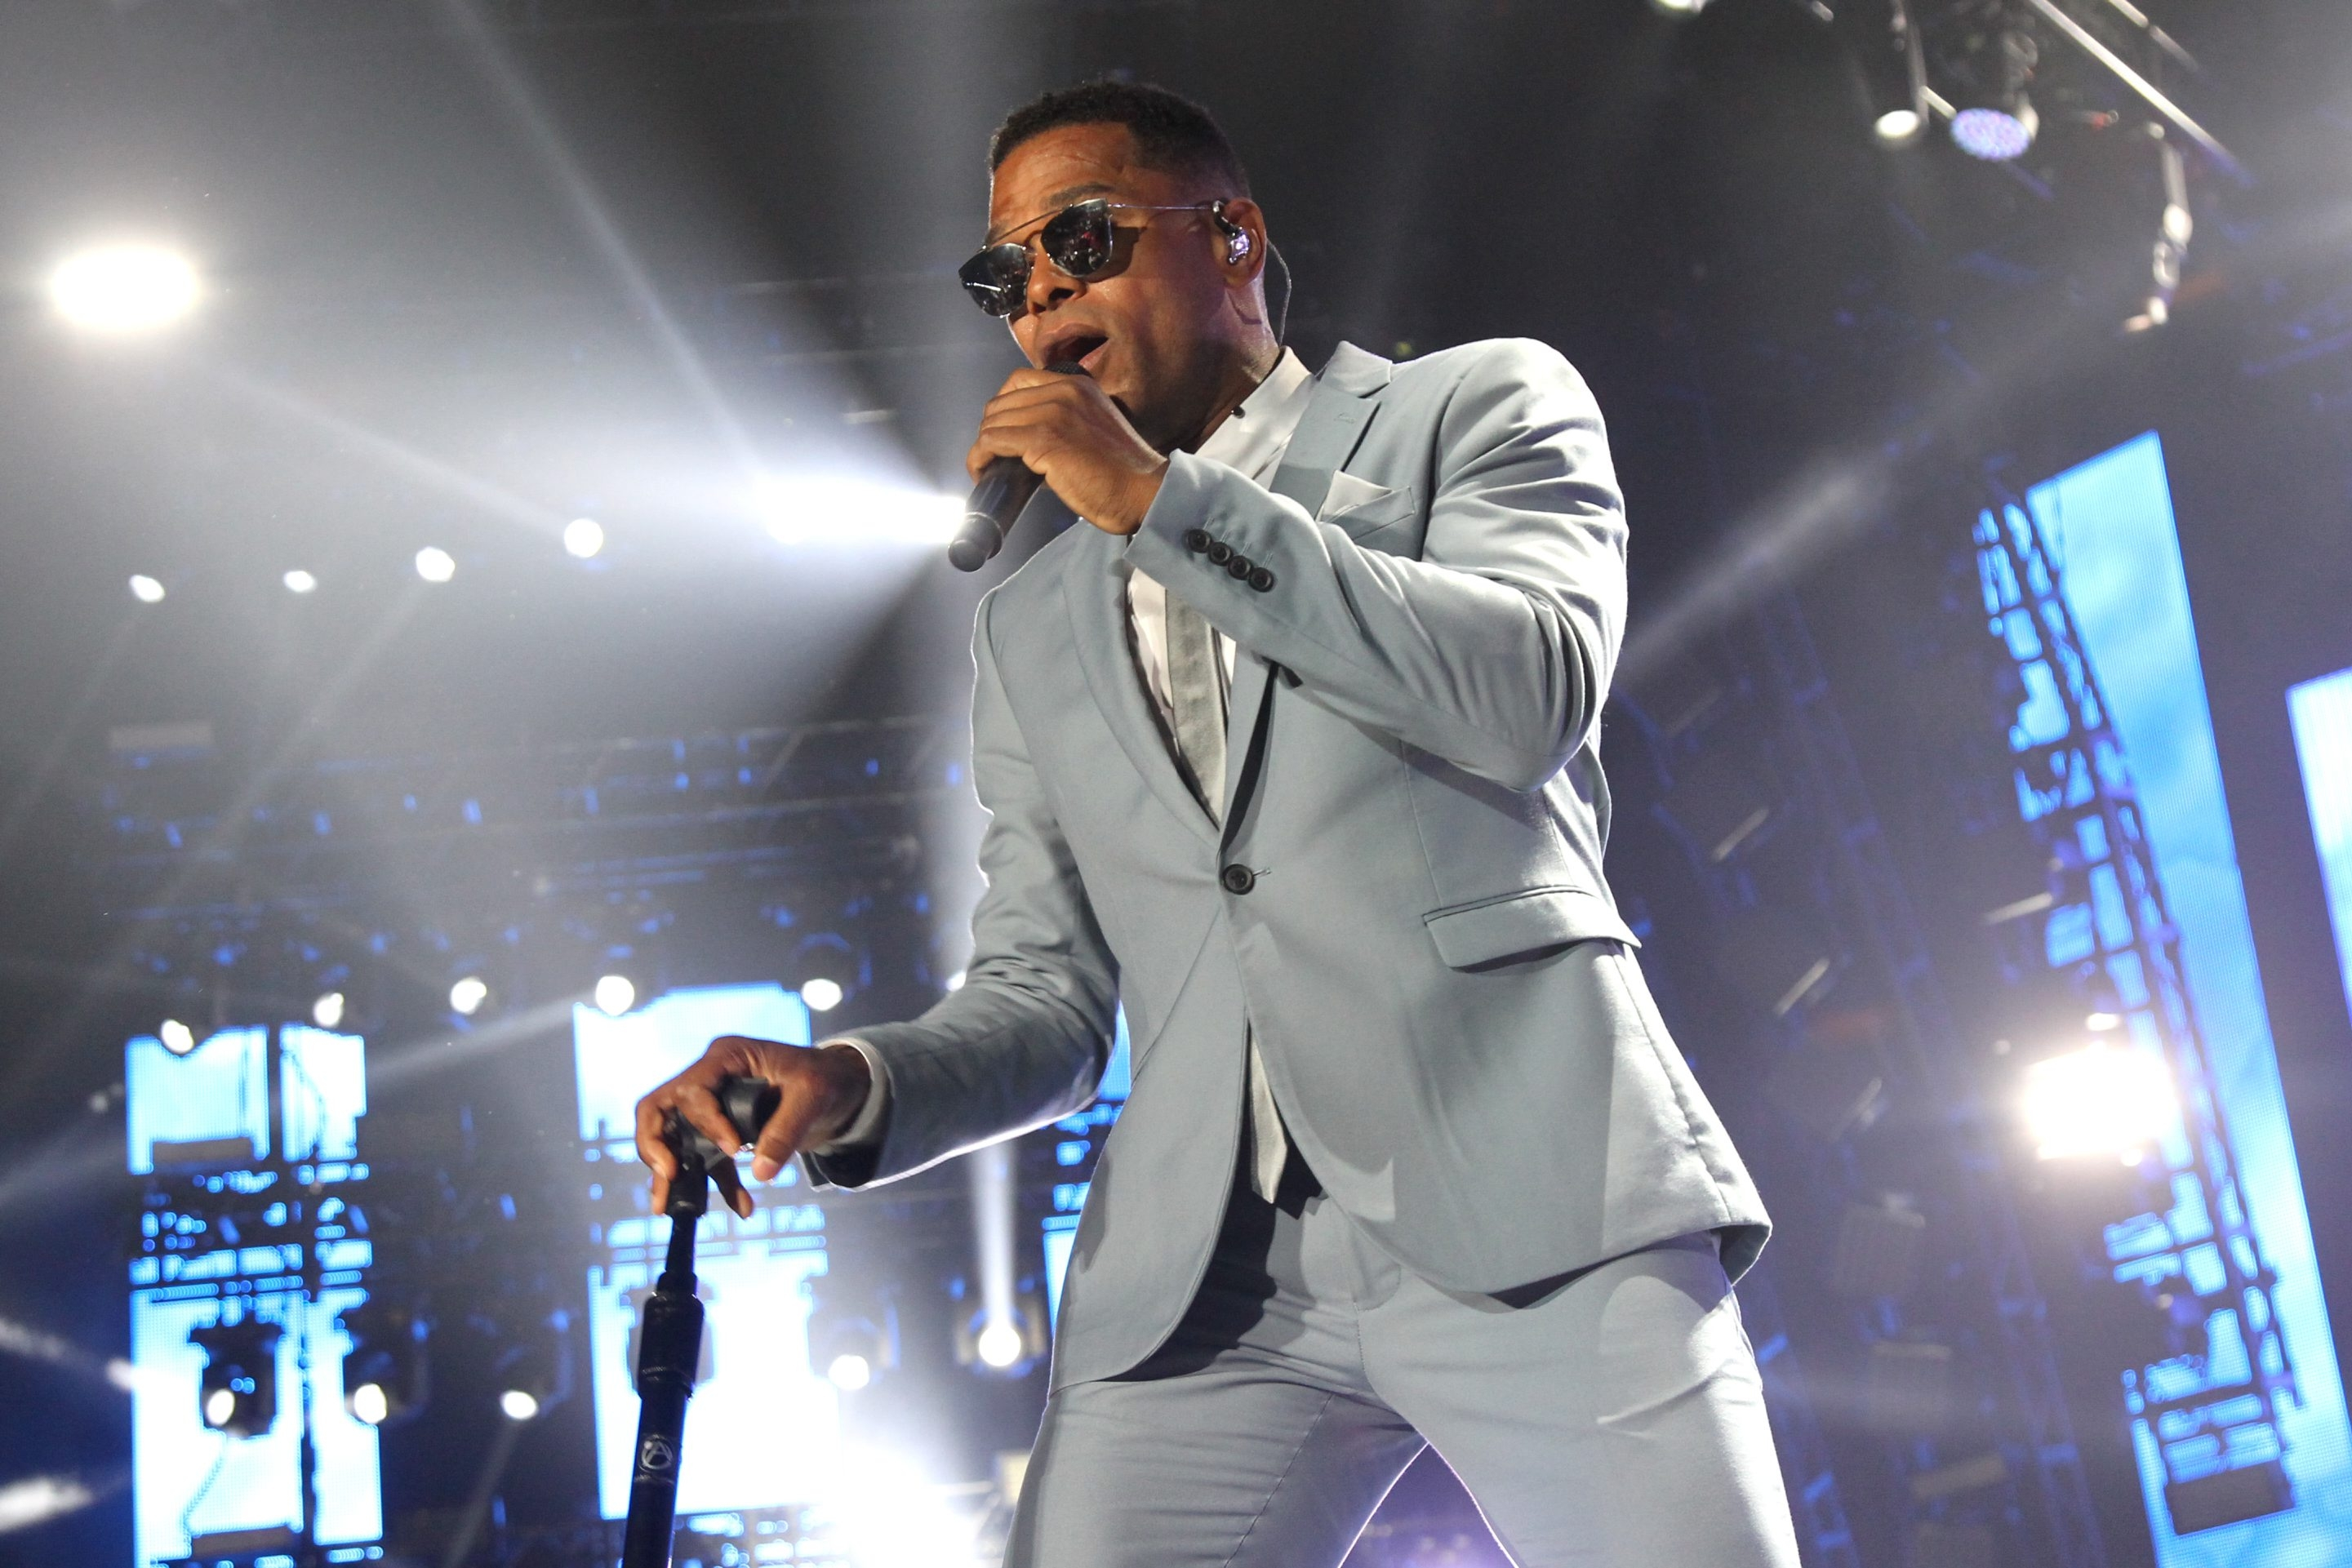 Maxwell, pictured here at the 2016 ESSENCE Festival, performed a concert of timeless R&B at Shea's Performing Arts Center. (Getty Images)